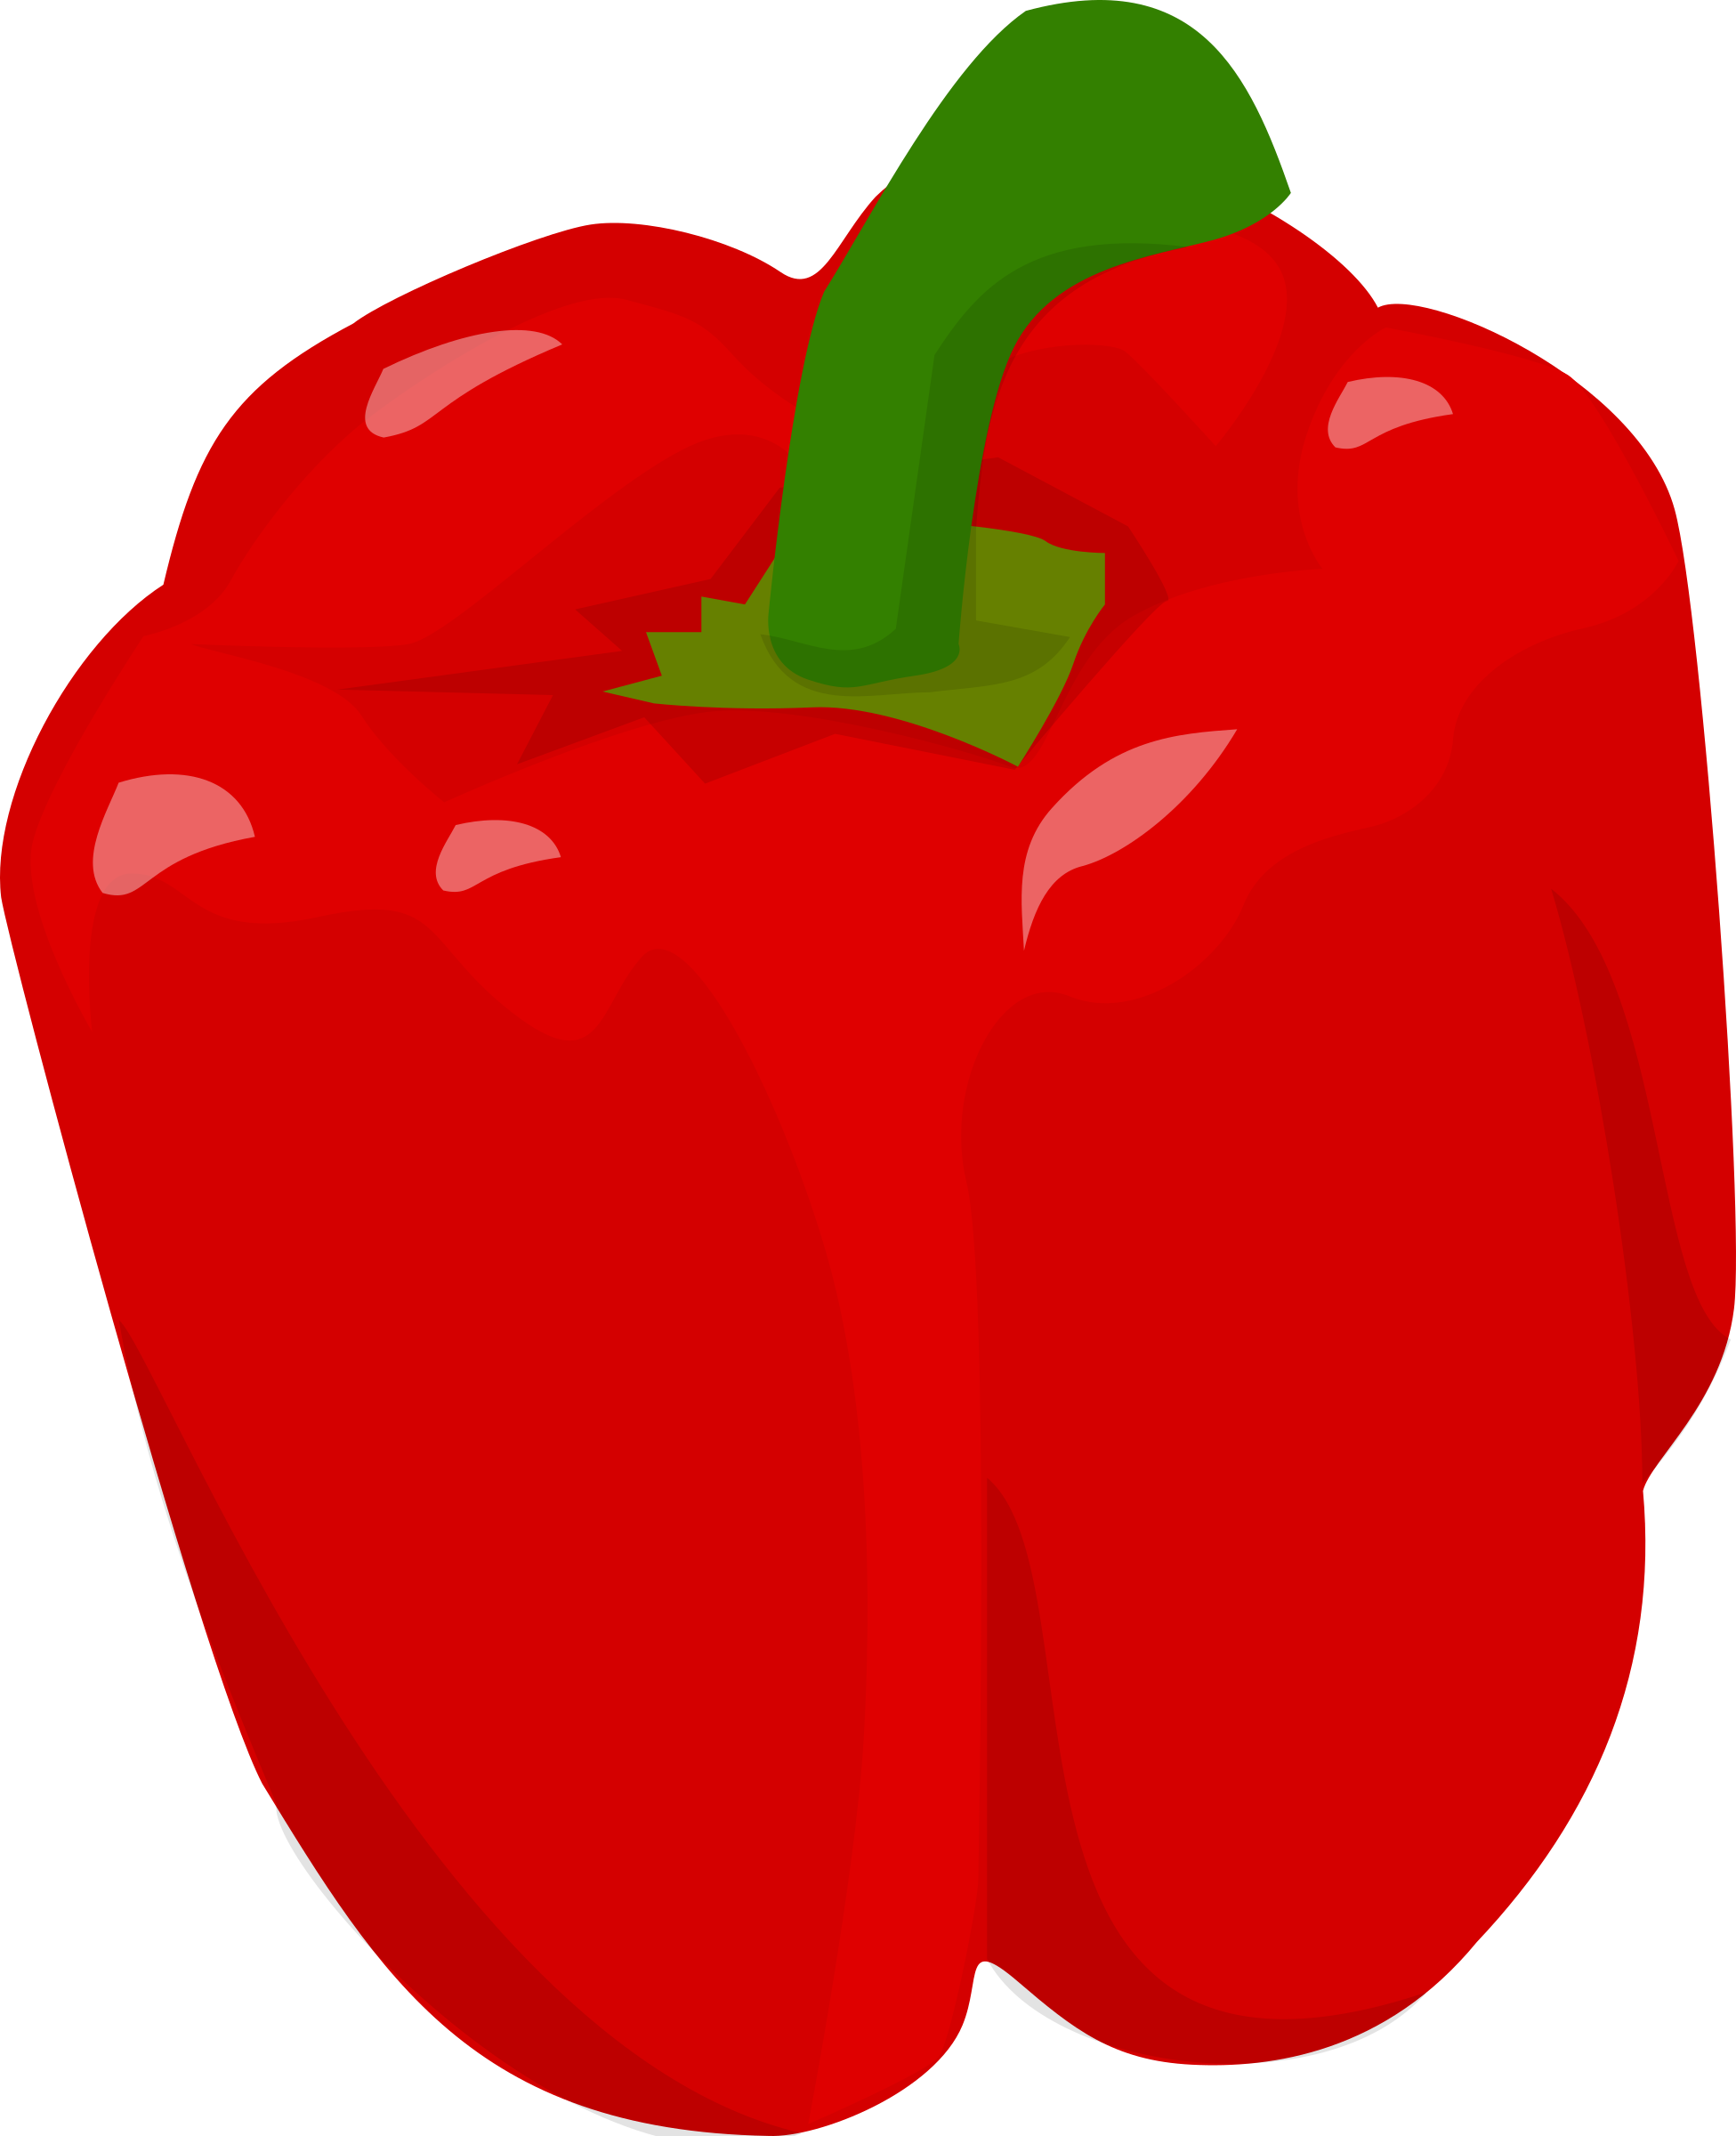 Bell pepper big image. Peppers clipart sliced